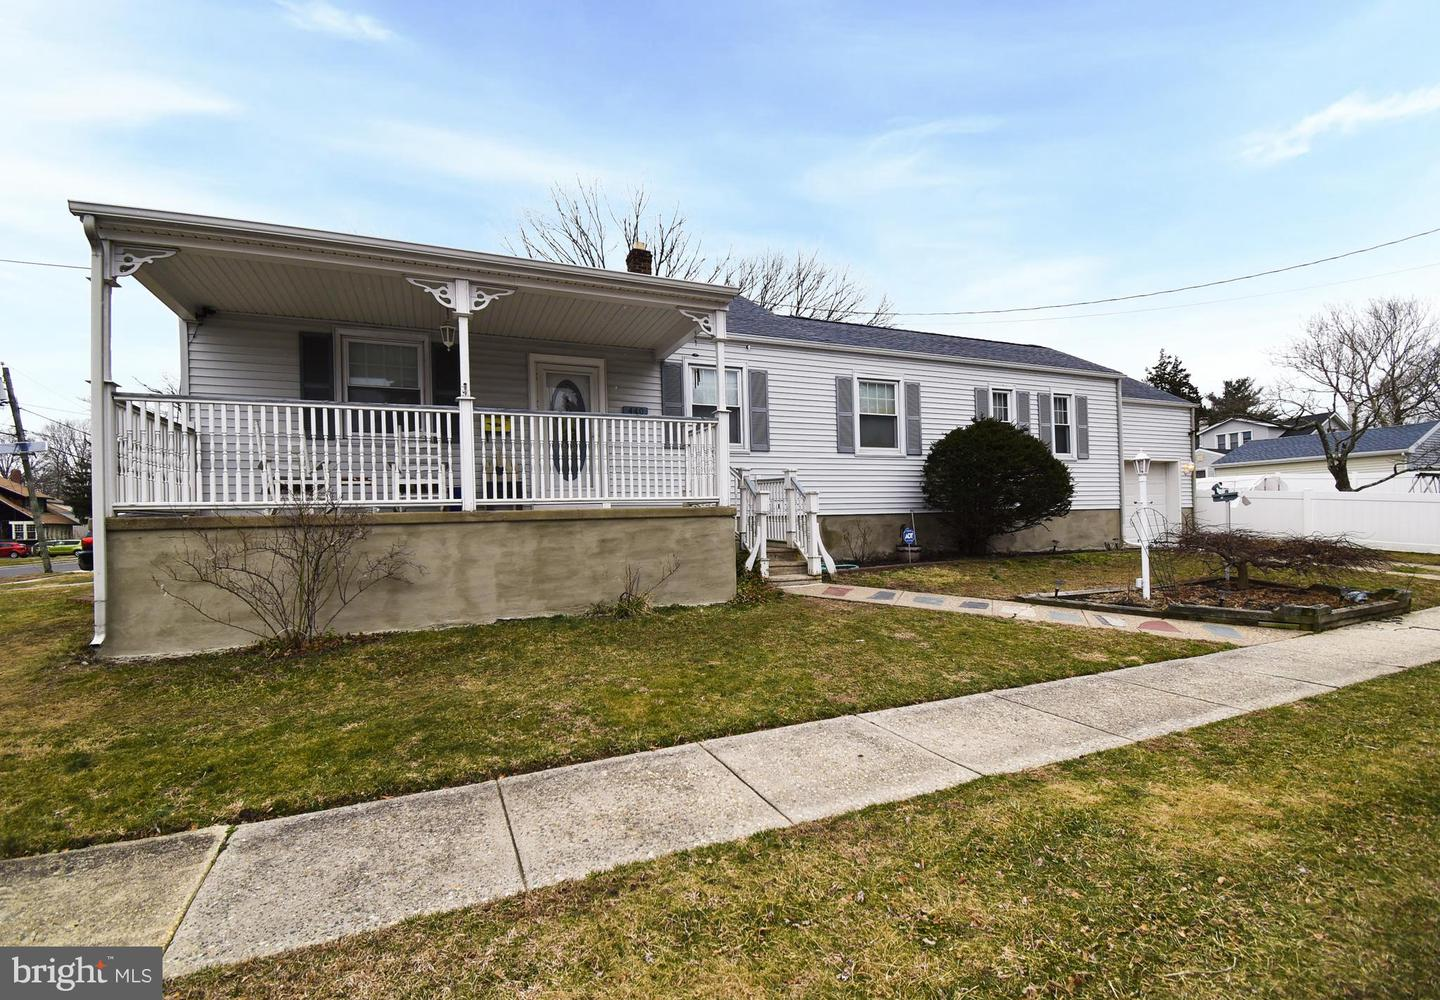 440 W LINCOLN AVE, MAGNOLIA, NJ 08049